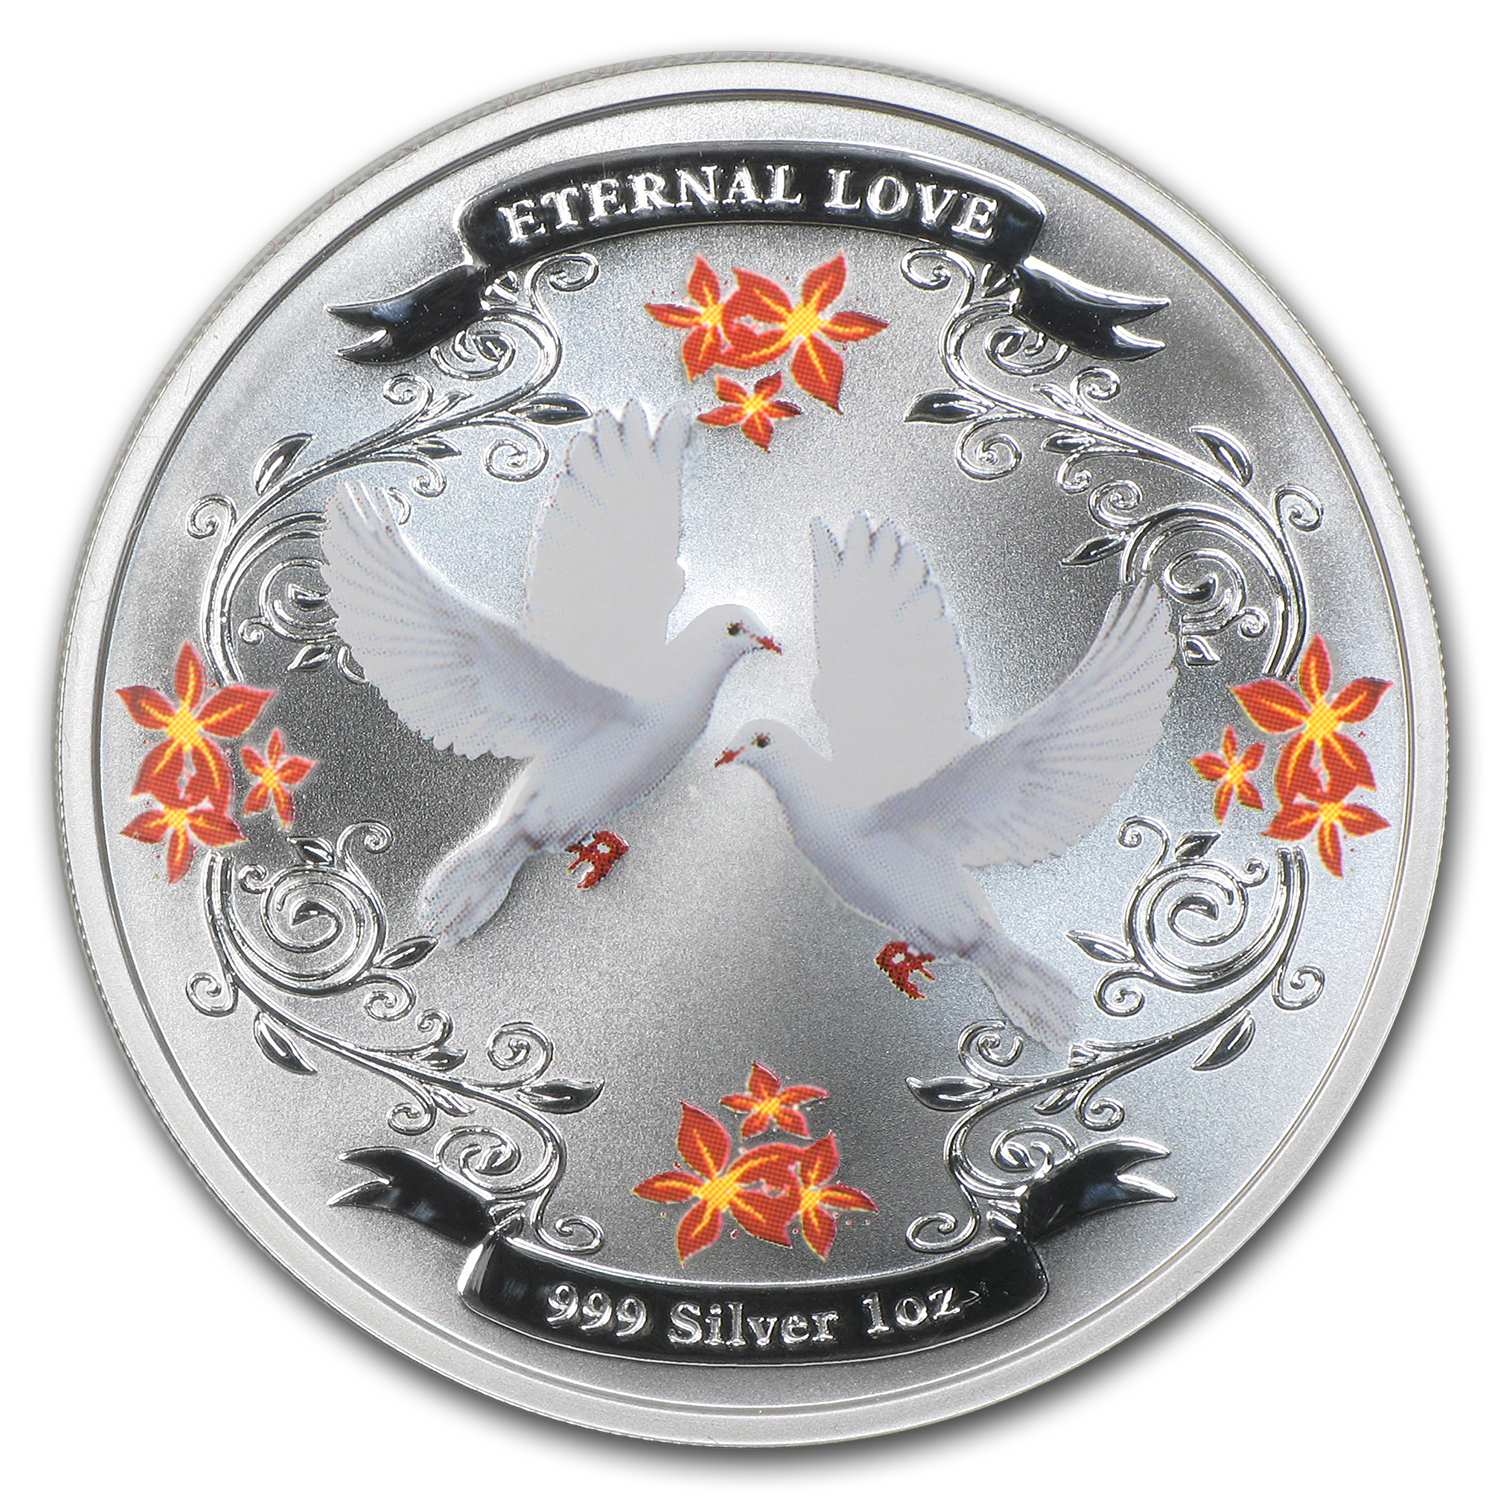 2011 Niue 1 oz Silver $2 Eternal Love Proof (w/Box & COA)